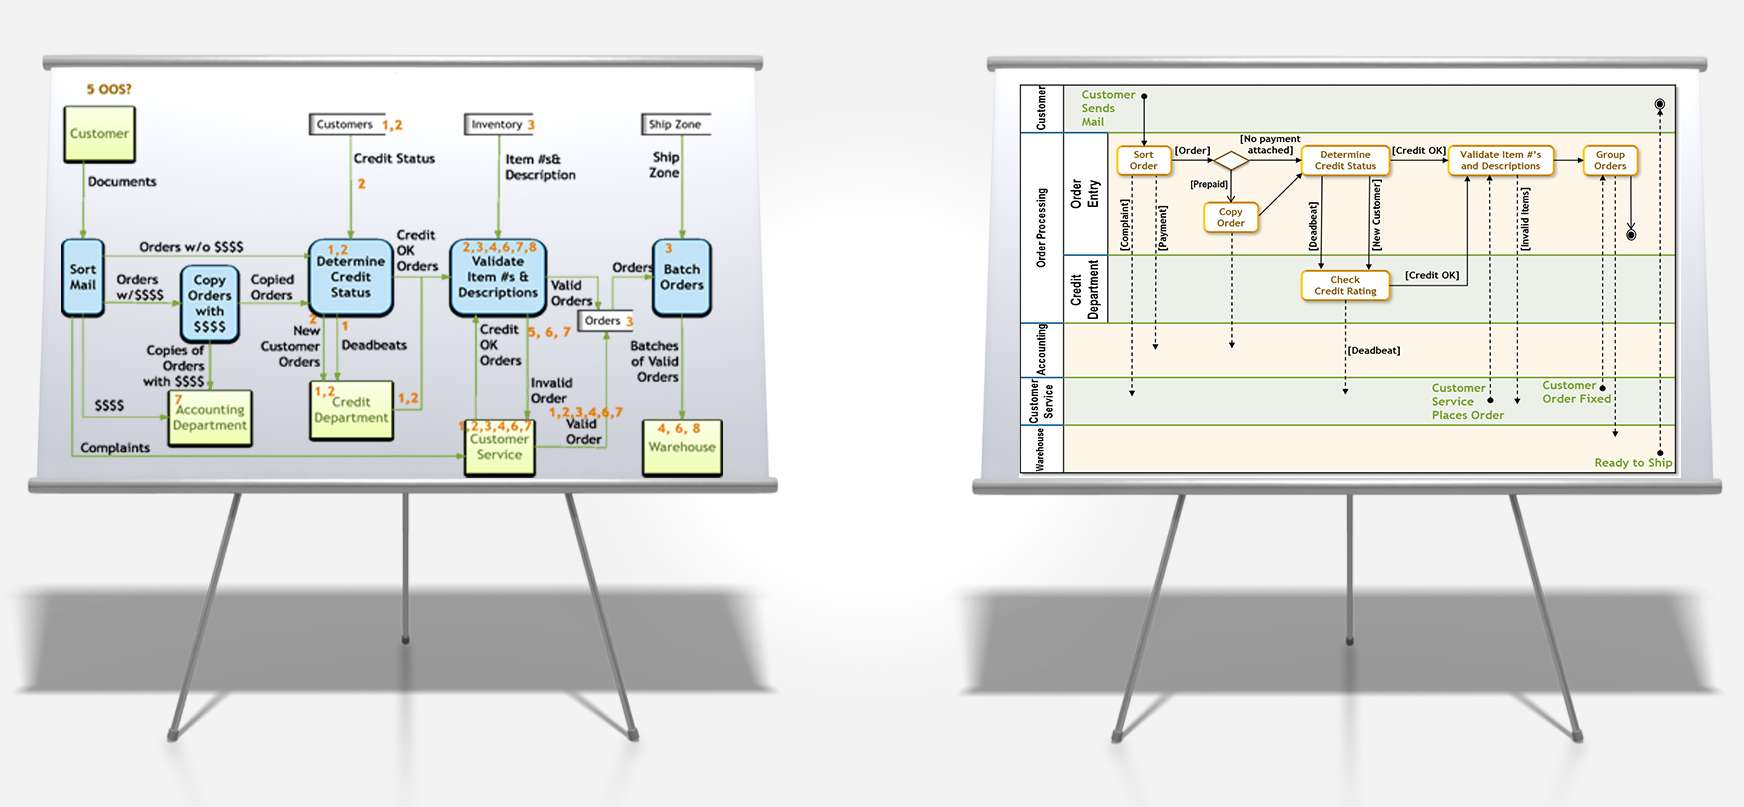 Data Flow Diagrams vs Activity Diagrams: Which to Use When